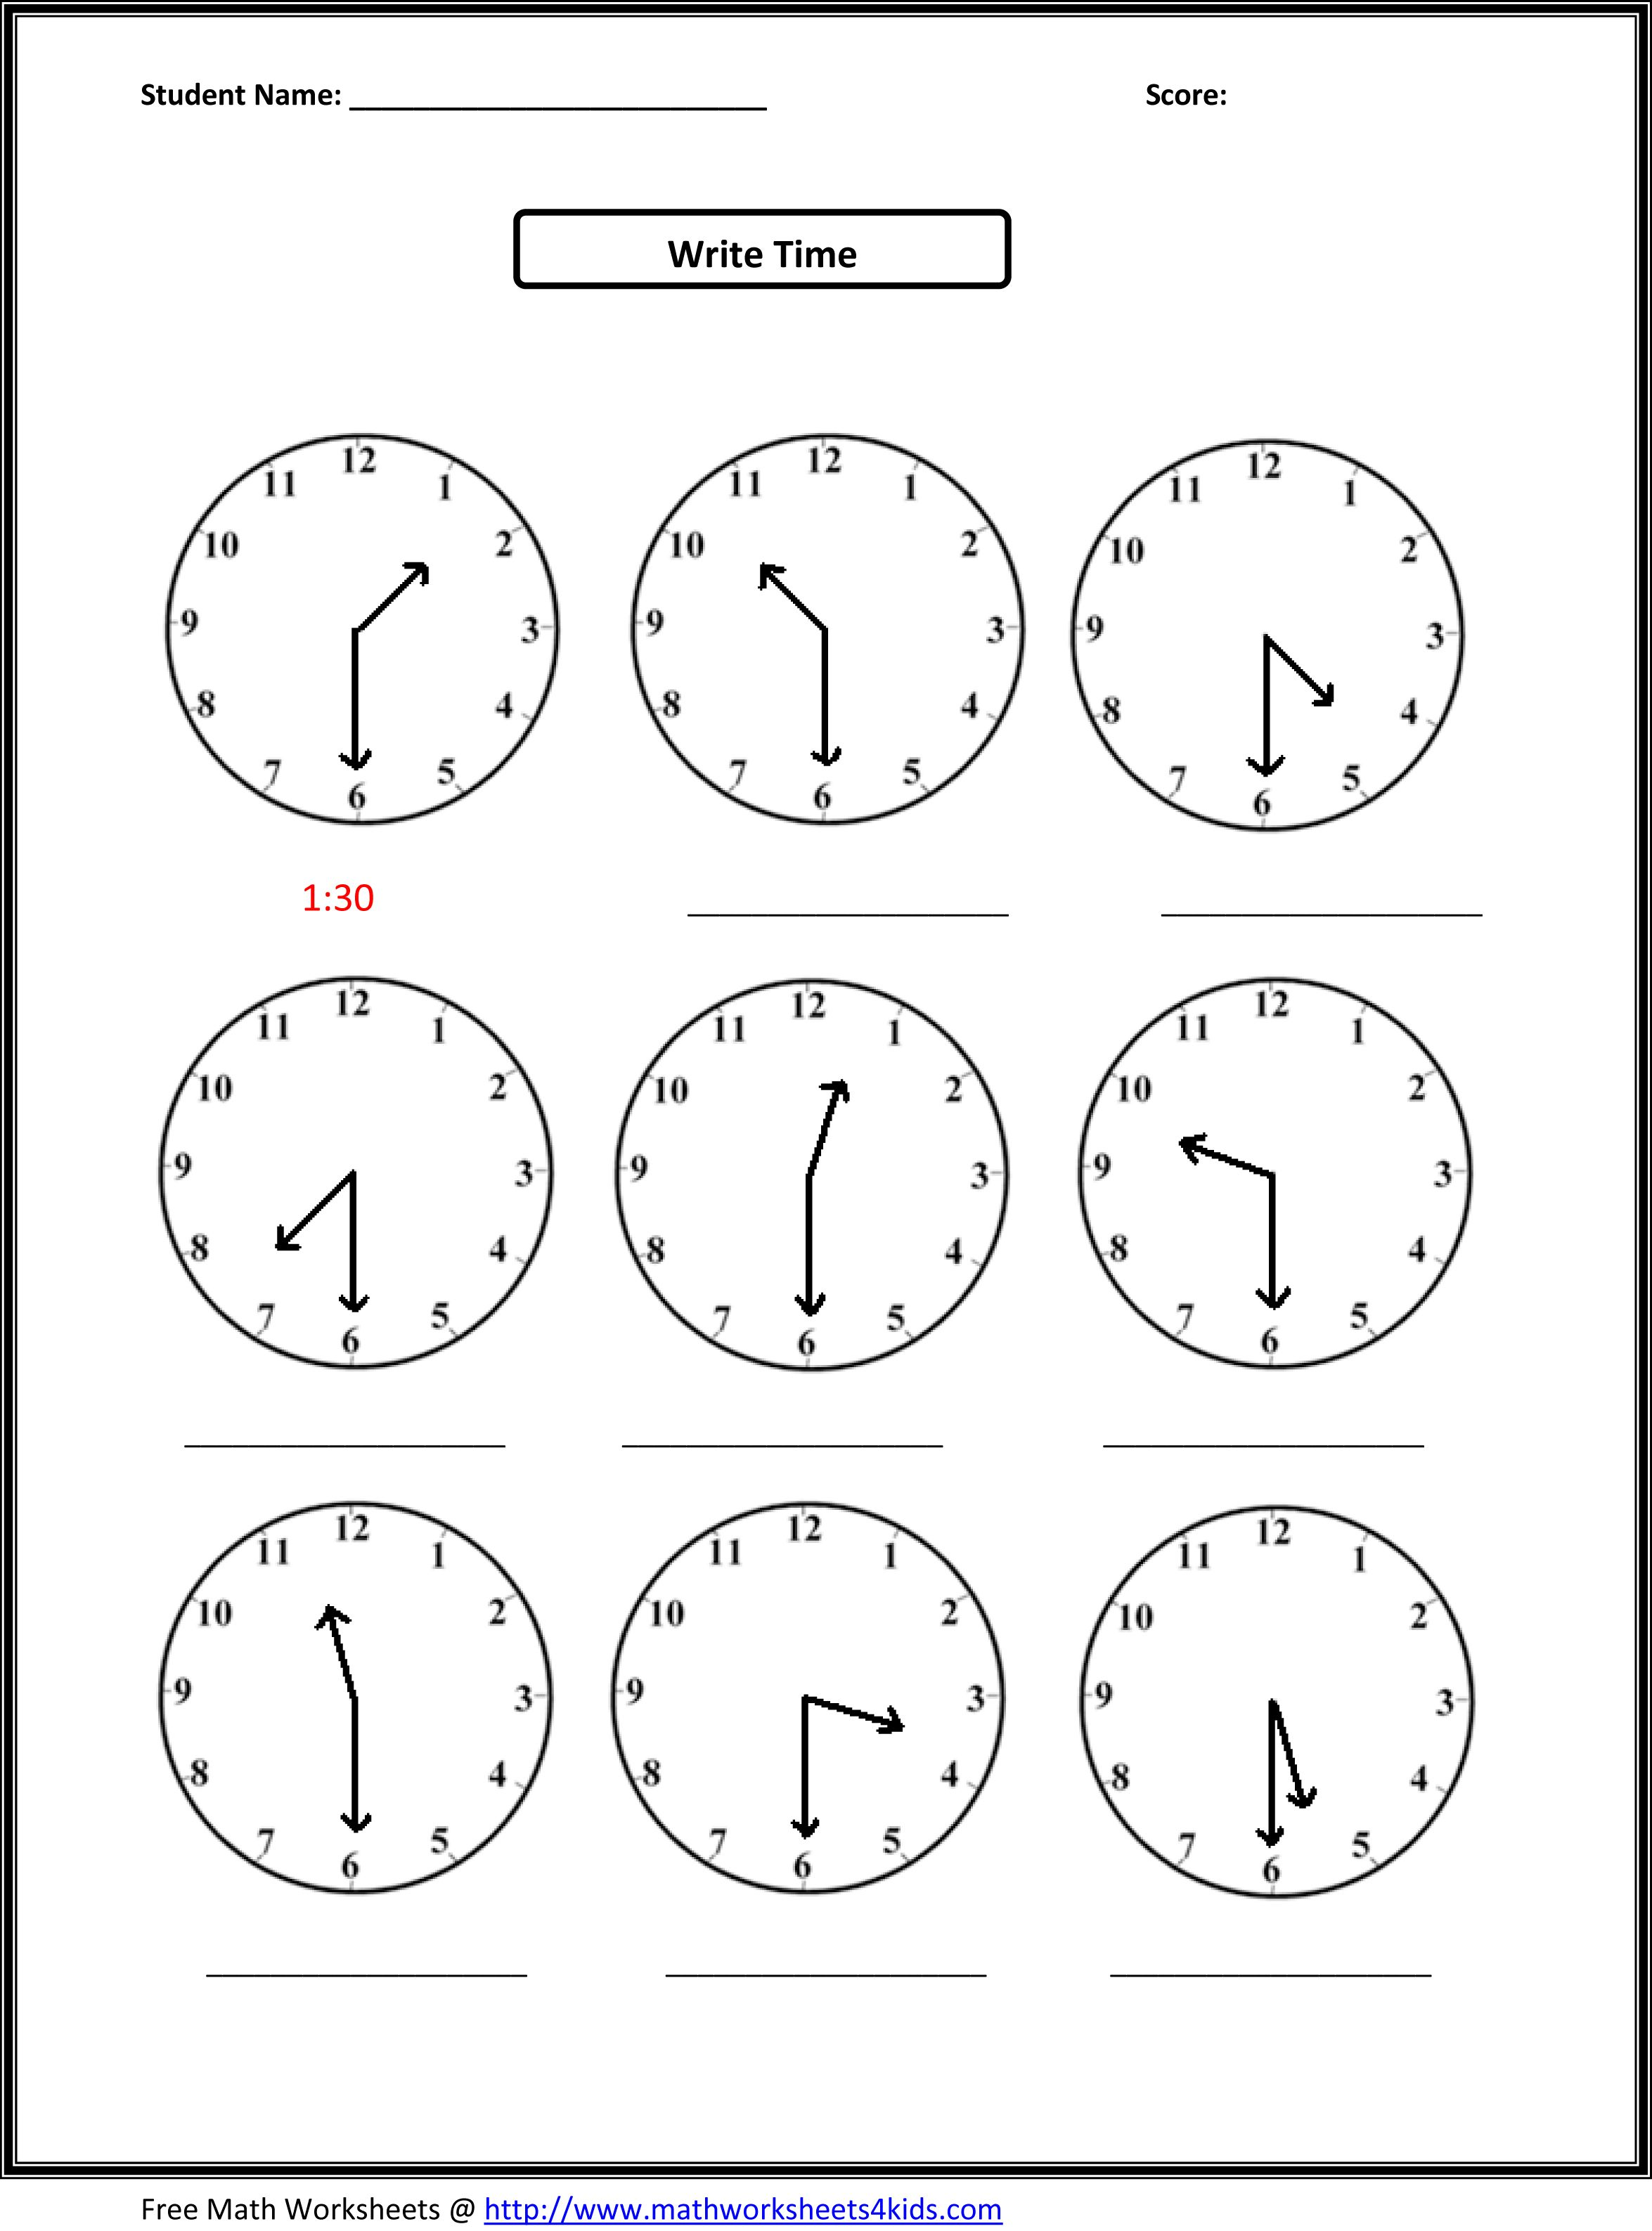 Proatmealus  Inspiring Worksheet On Time For Grade   Reocurent With Inspiring Free Printable Telling Time Worksheets Nd Grade  Reocurent With Astonishing Air Mass Worksheet Also Multiply Monomials Worksheet In Addition Mole Problems Chemistry Worksheet And Dred Scott Worksheet As Well As Reflexive And Intensive Pronouns Worksheet Additionally Solve For Variable Worksheet From Reocurentcom With Proatmealus  Inspiring Worksheet On Time For Grade   Reocurent With Astonishing Free Printable Telling Time Worksheets Nd Grade  Reocurent And Inspiring Air Mass Worksheet Also Multiply Monomials Worksheet In Addition Mole Problems Chemistry Worksheet From Reocurentcom